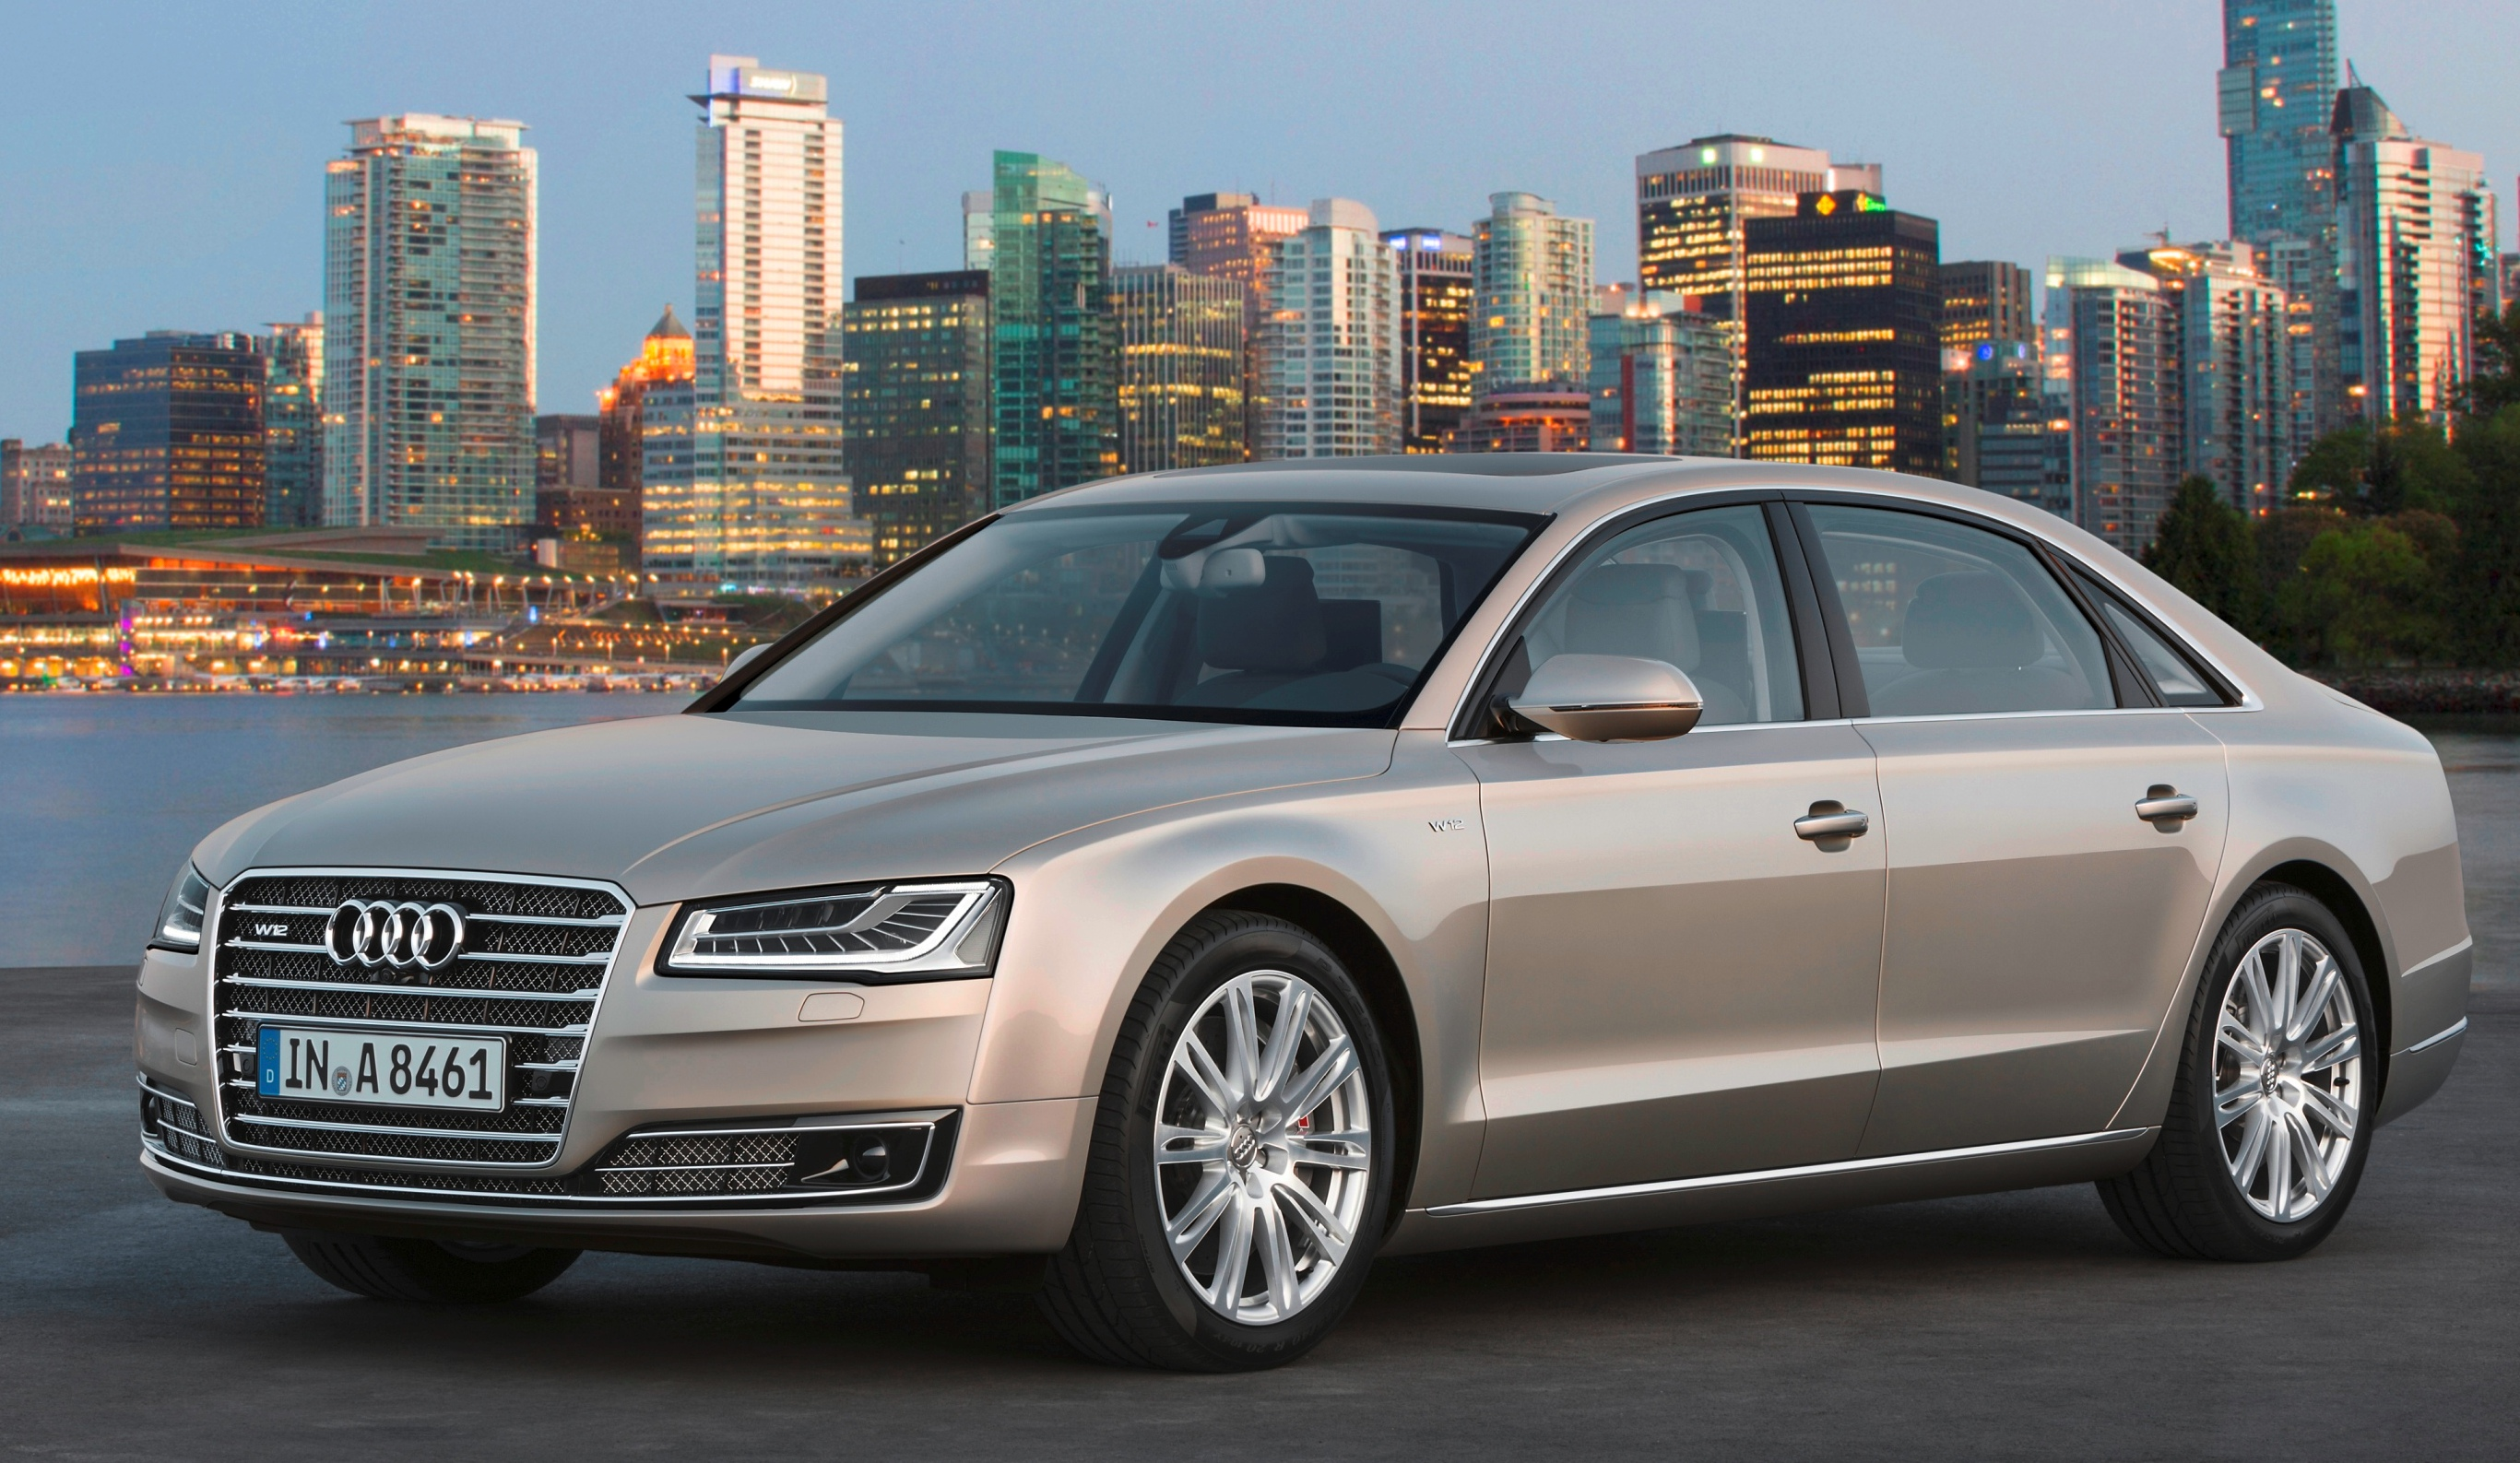 2015 audi a8 l w12 review top speed. Black Bedroom Furniture Sets. Home Design Ideas